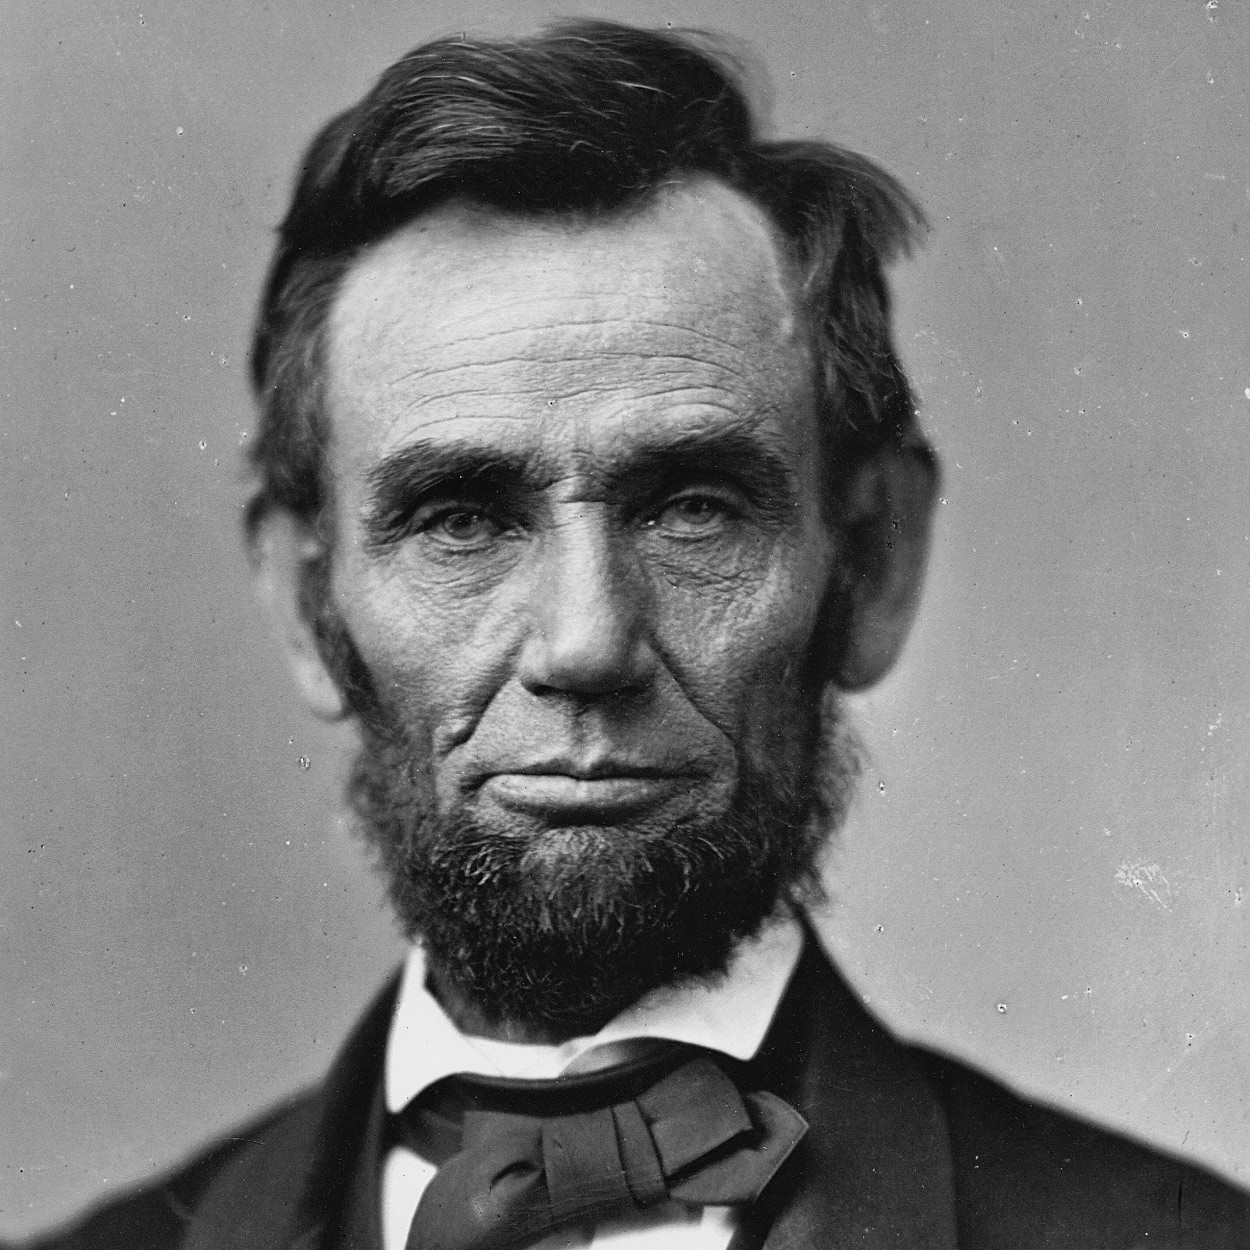 Portrait of Abraham Lincoln, the 16th President of the United States